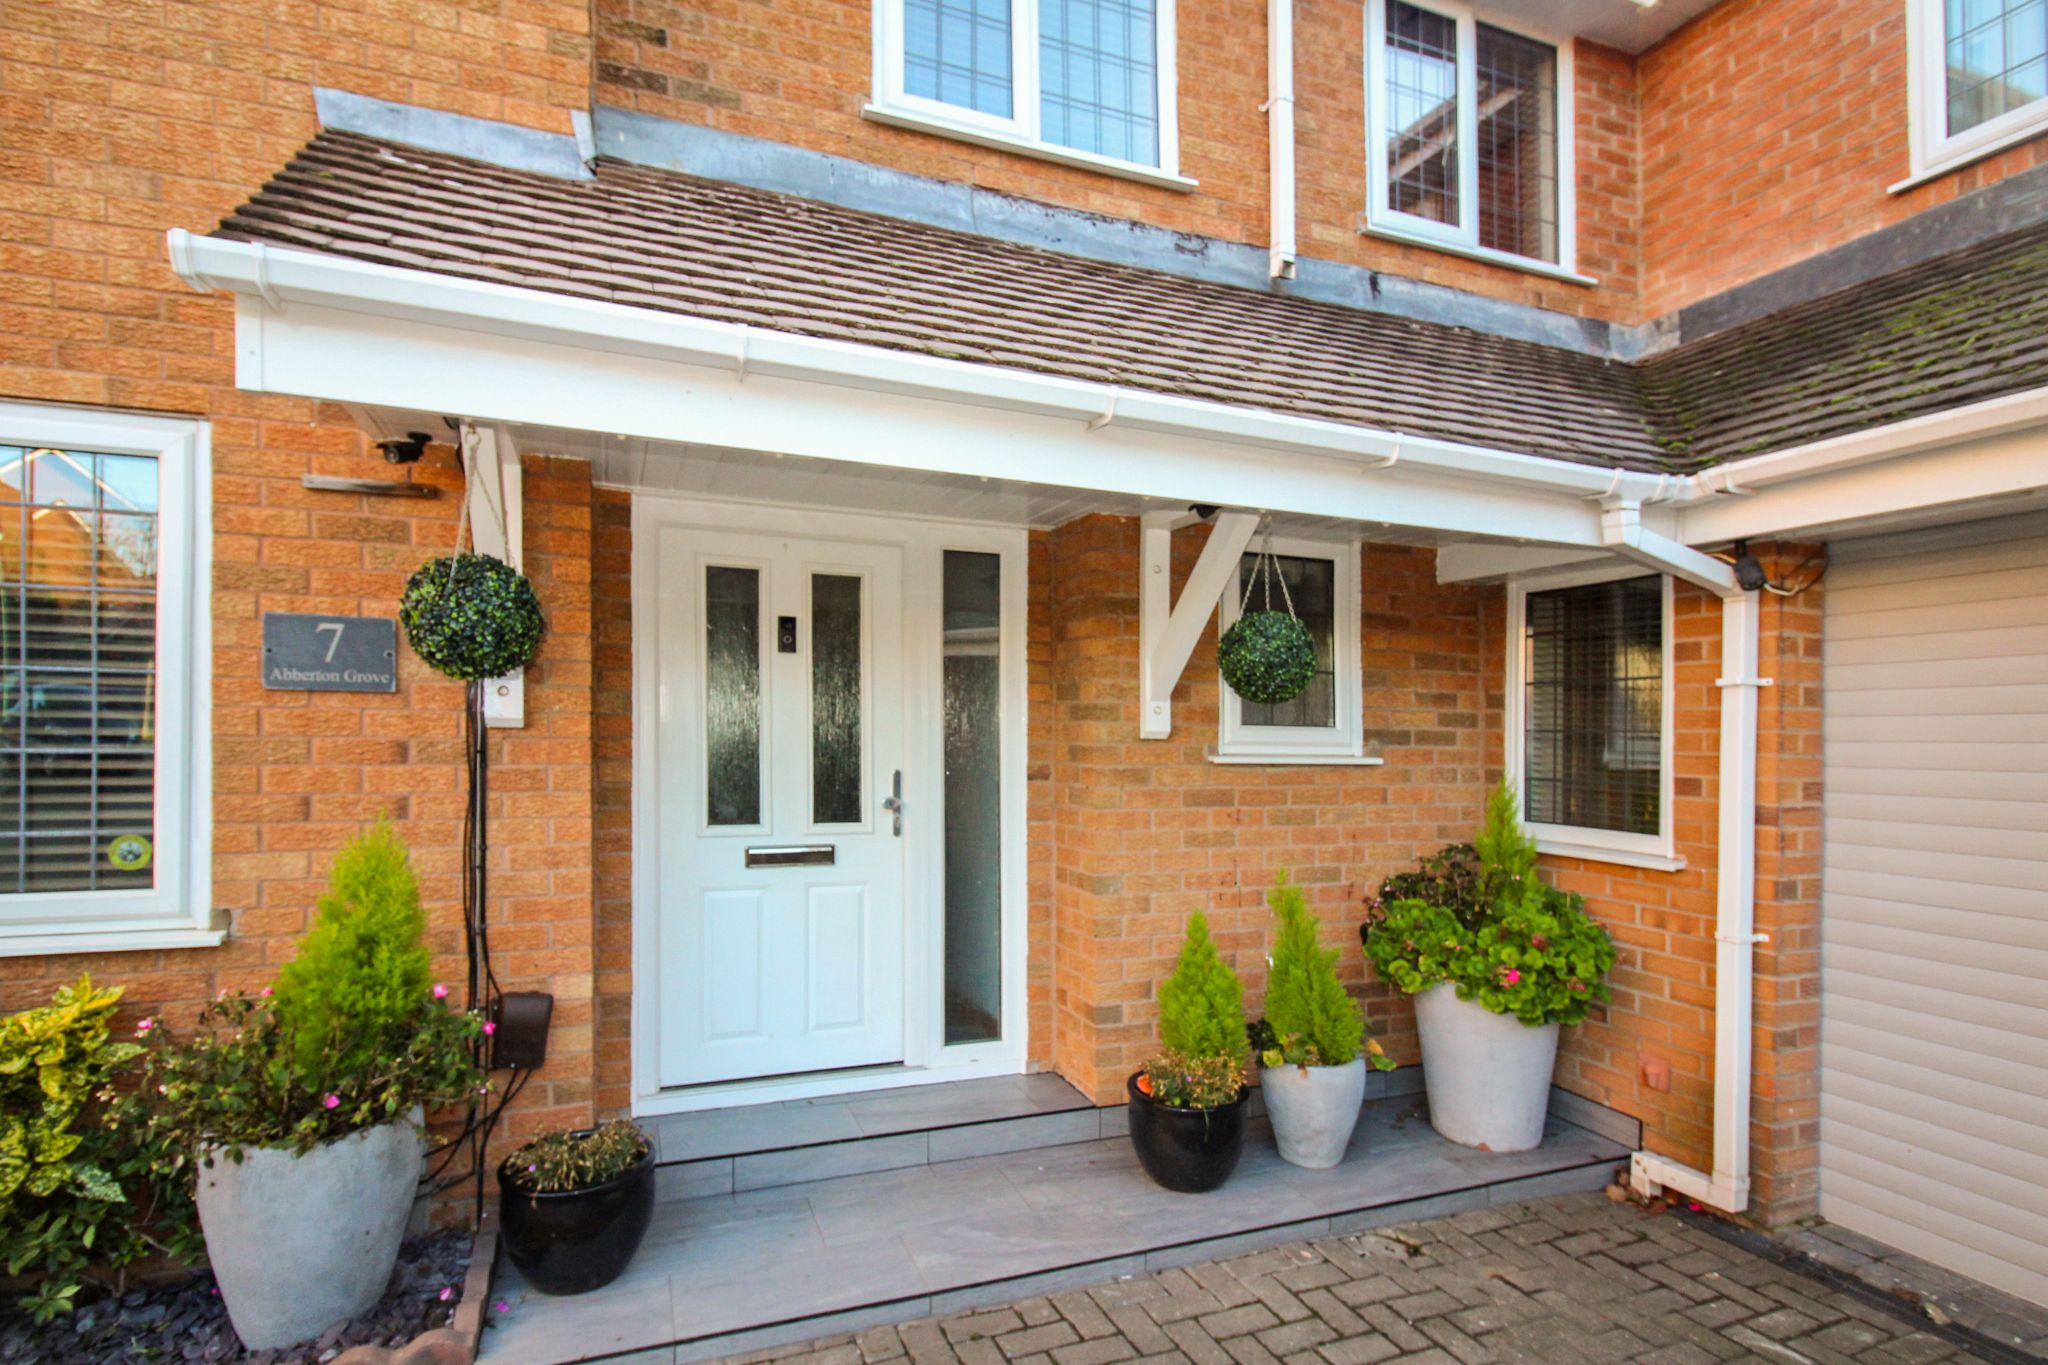 6 bedroom detached house SSTC in Solihull - Photograph 2.